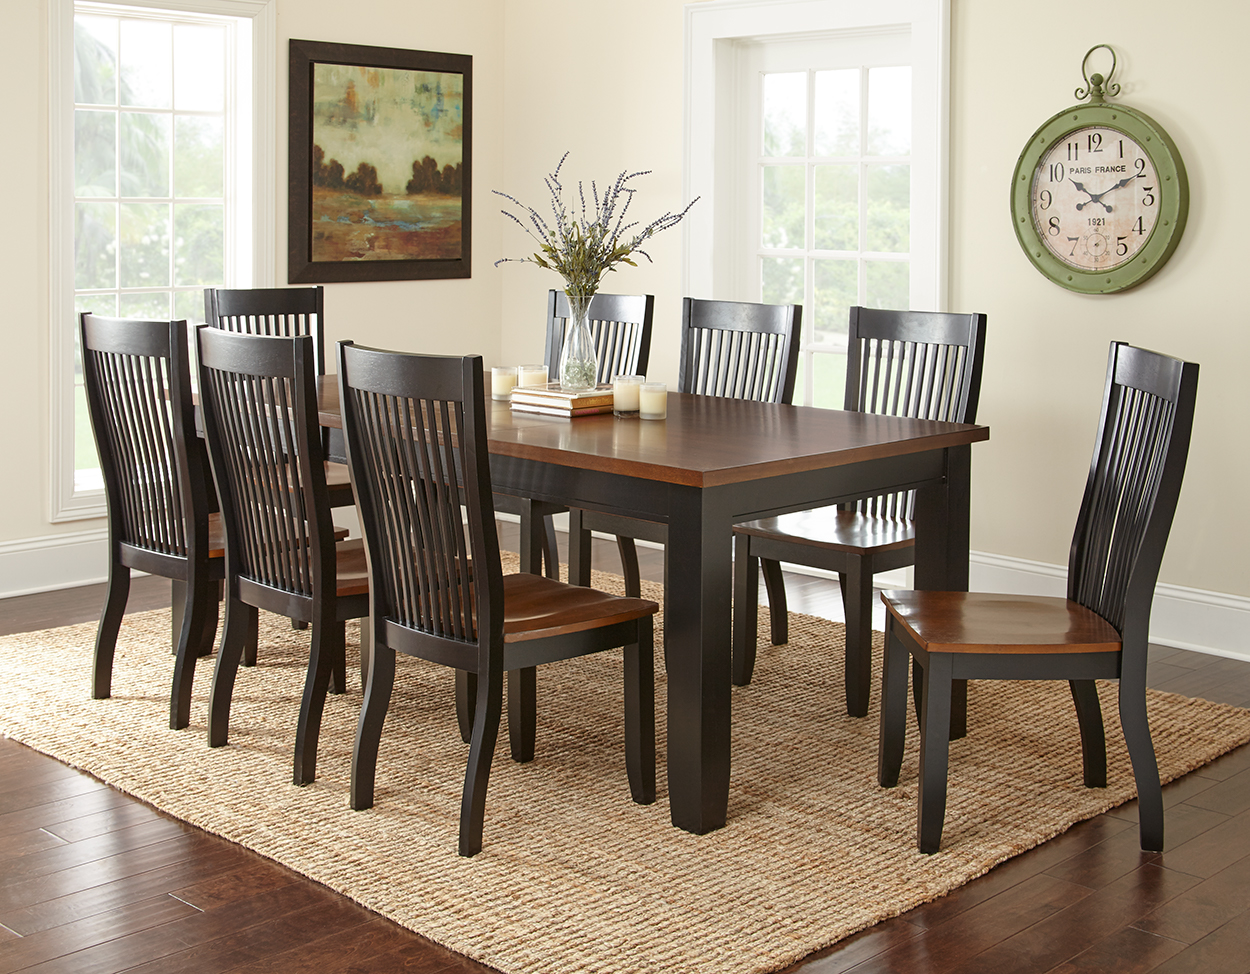 Costco dining room set universal furniture rosemont dining set 7piece dining room set from - Costco dining room set ...